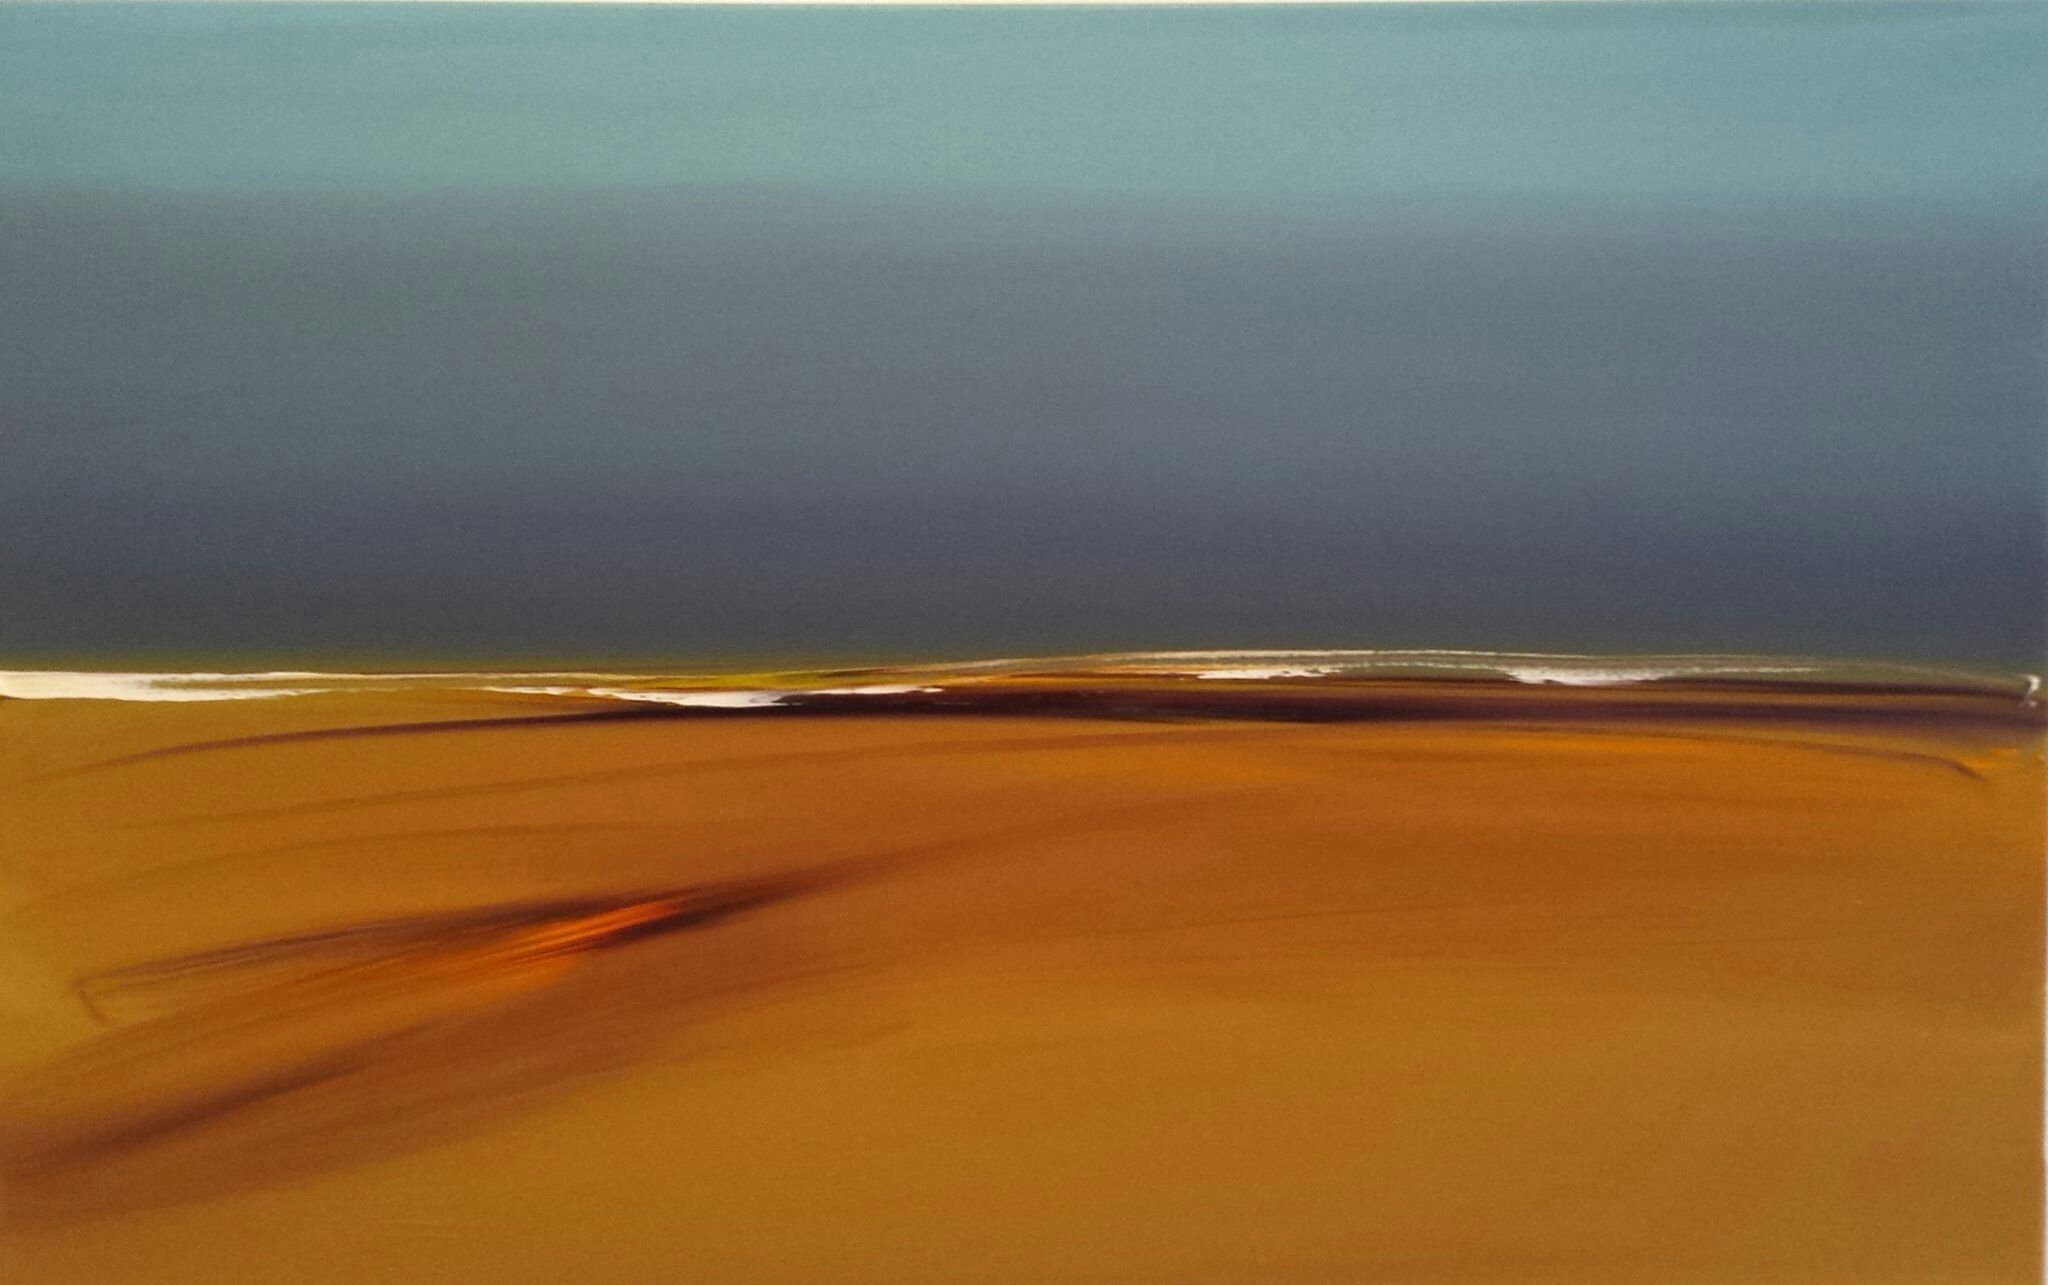 an abstract painting of a landscape, broad strokes of color vivid against each other, vibrating: the sky is overcast and the ground is brown and orange, as if sand.